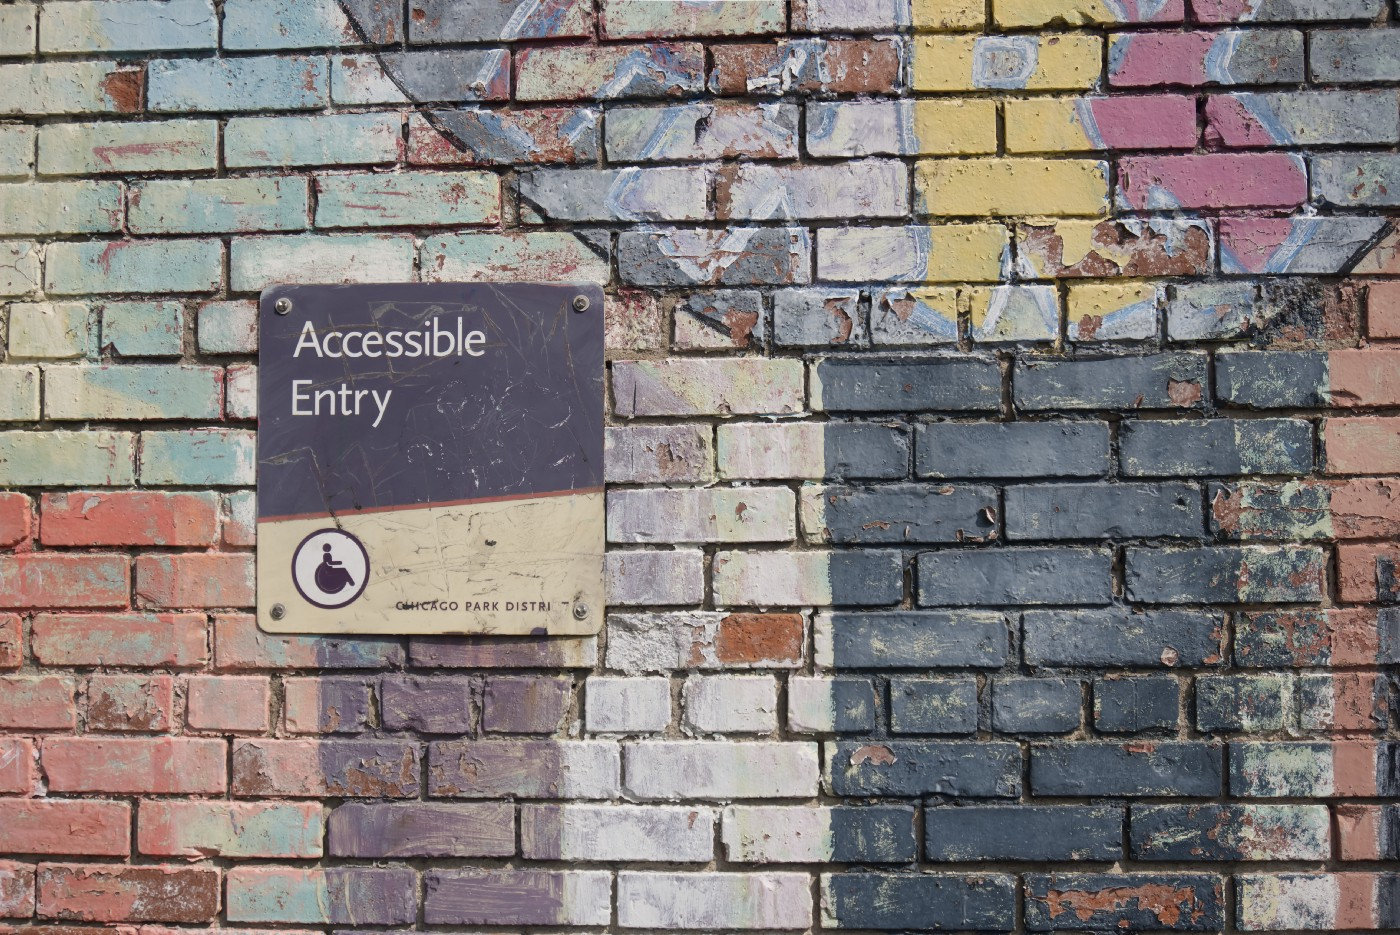 Accessibility is not limited to physical surroundings. Our communication through presentations can also be accessible. The photo is a sign of an accessible entrance.